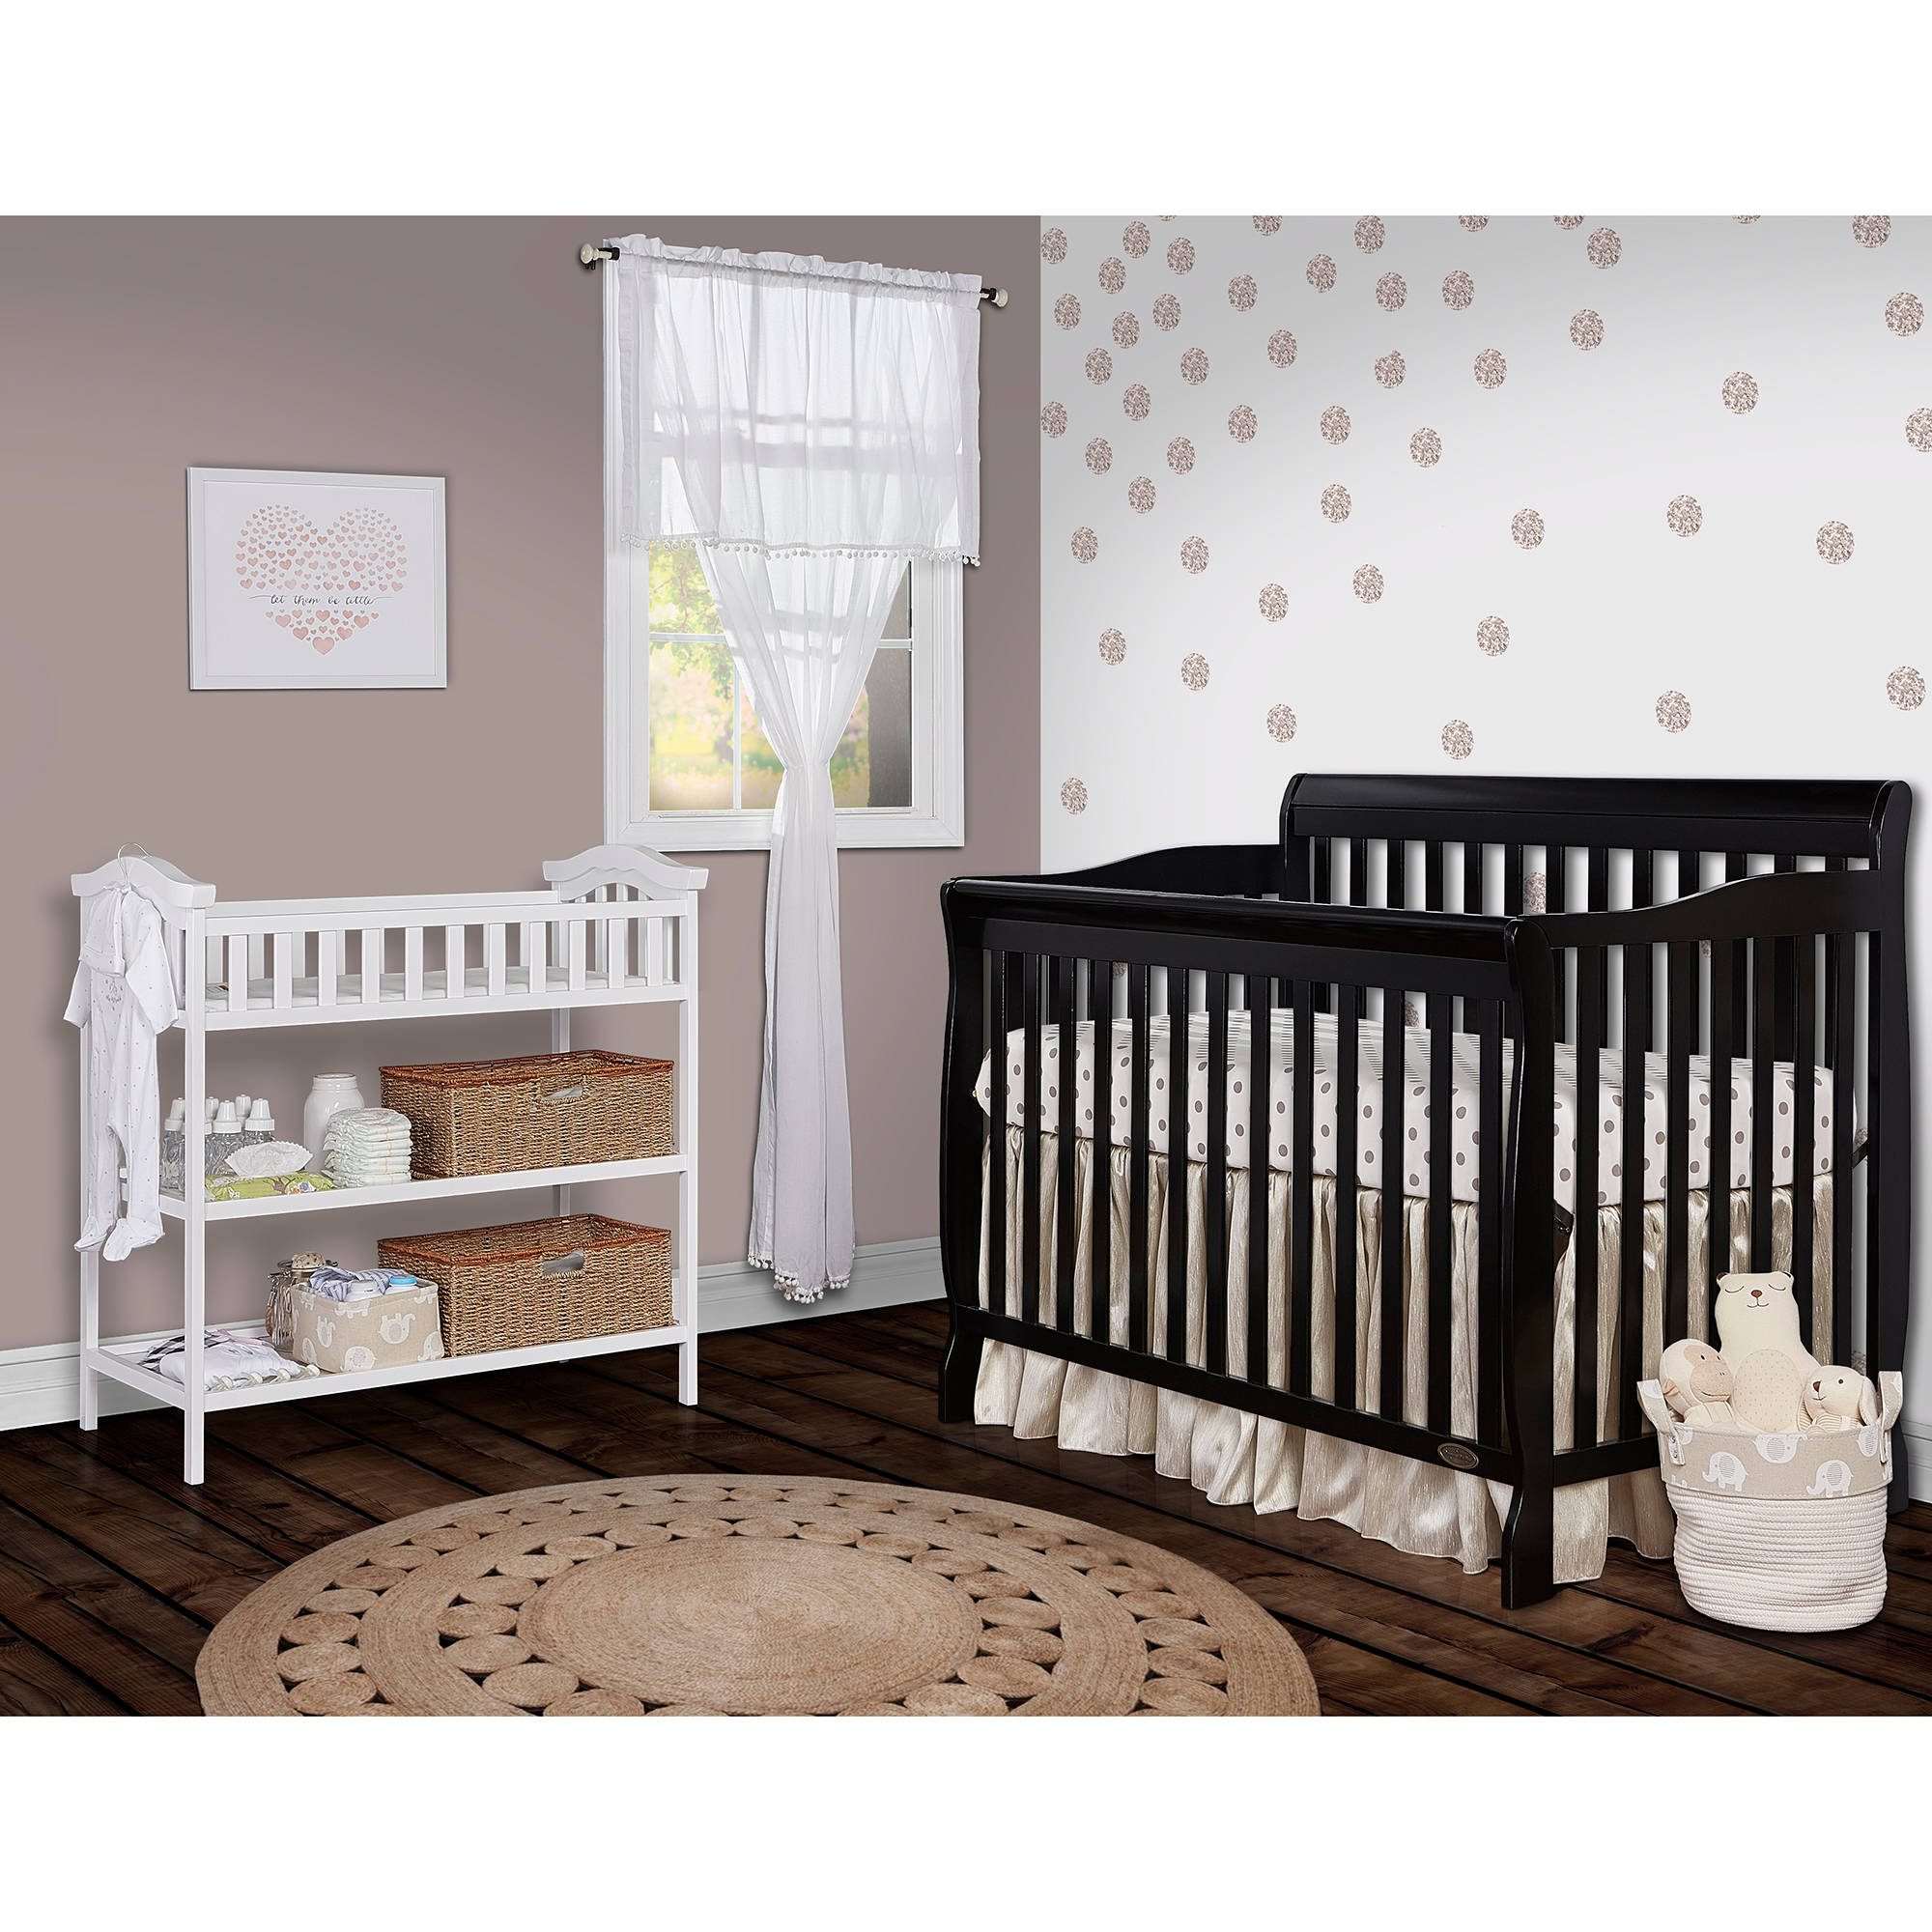 Dream On Me Ashton Convertible 5-in-1 Crib, Choose Your Finish